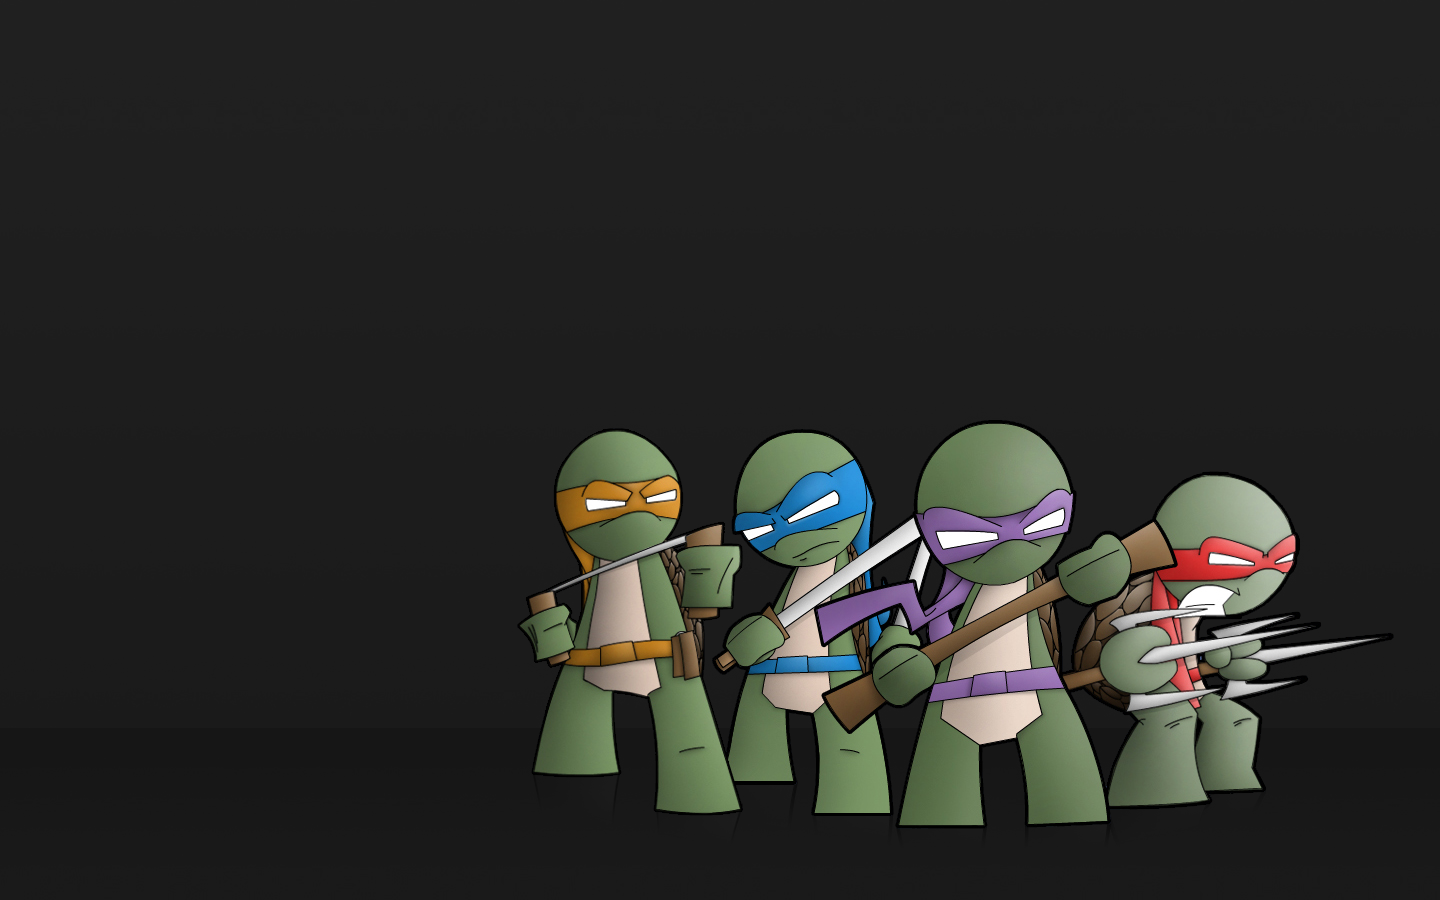 Ninja Turtle Wallpaper Best HD Photos of Ninja Turtle High - Turtle Shell PNG HD